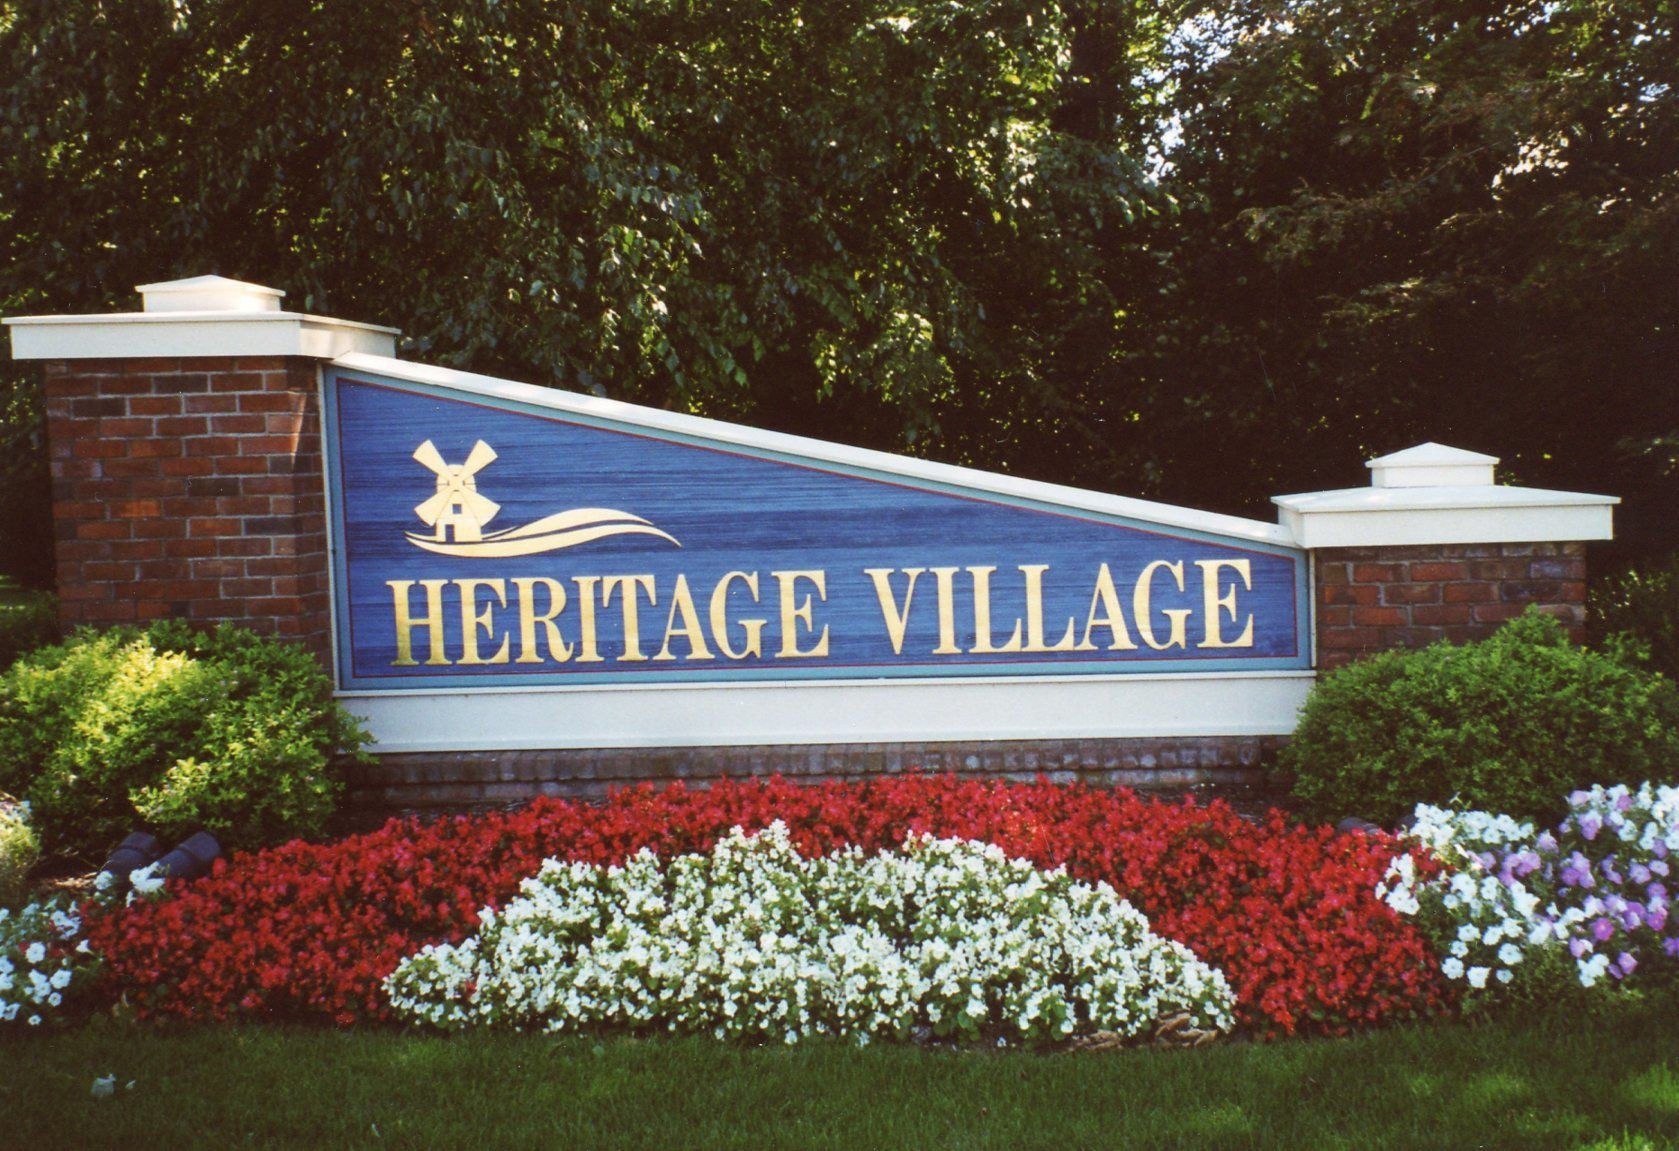 Apartments Near RPI Heritage Village Apartments for Rensselaer Polytechnic Institute Students in Troy, NY